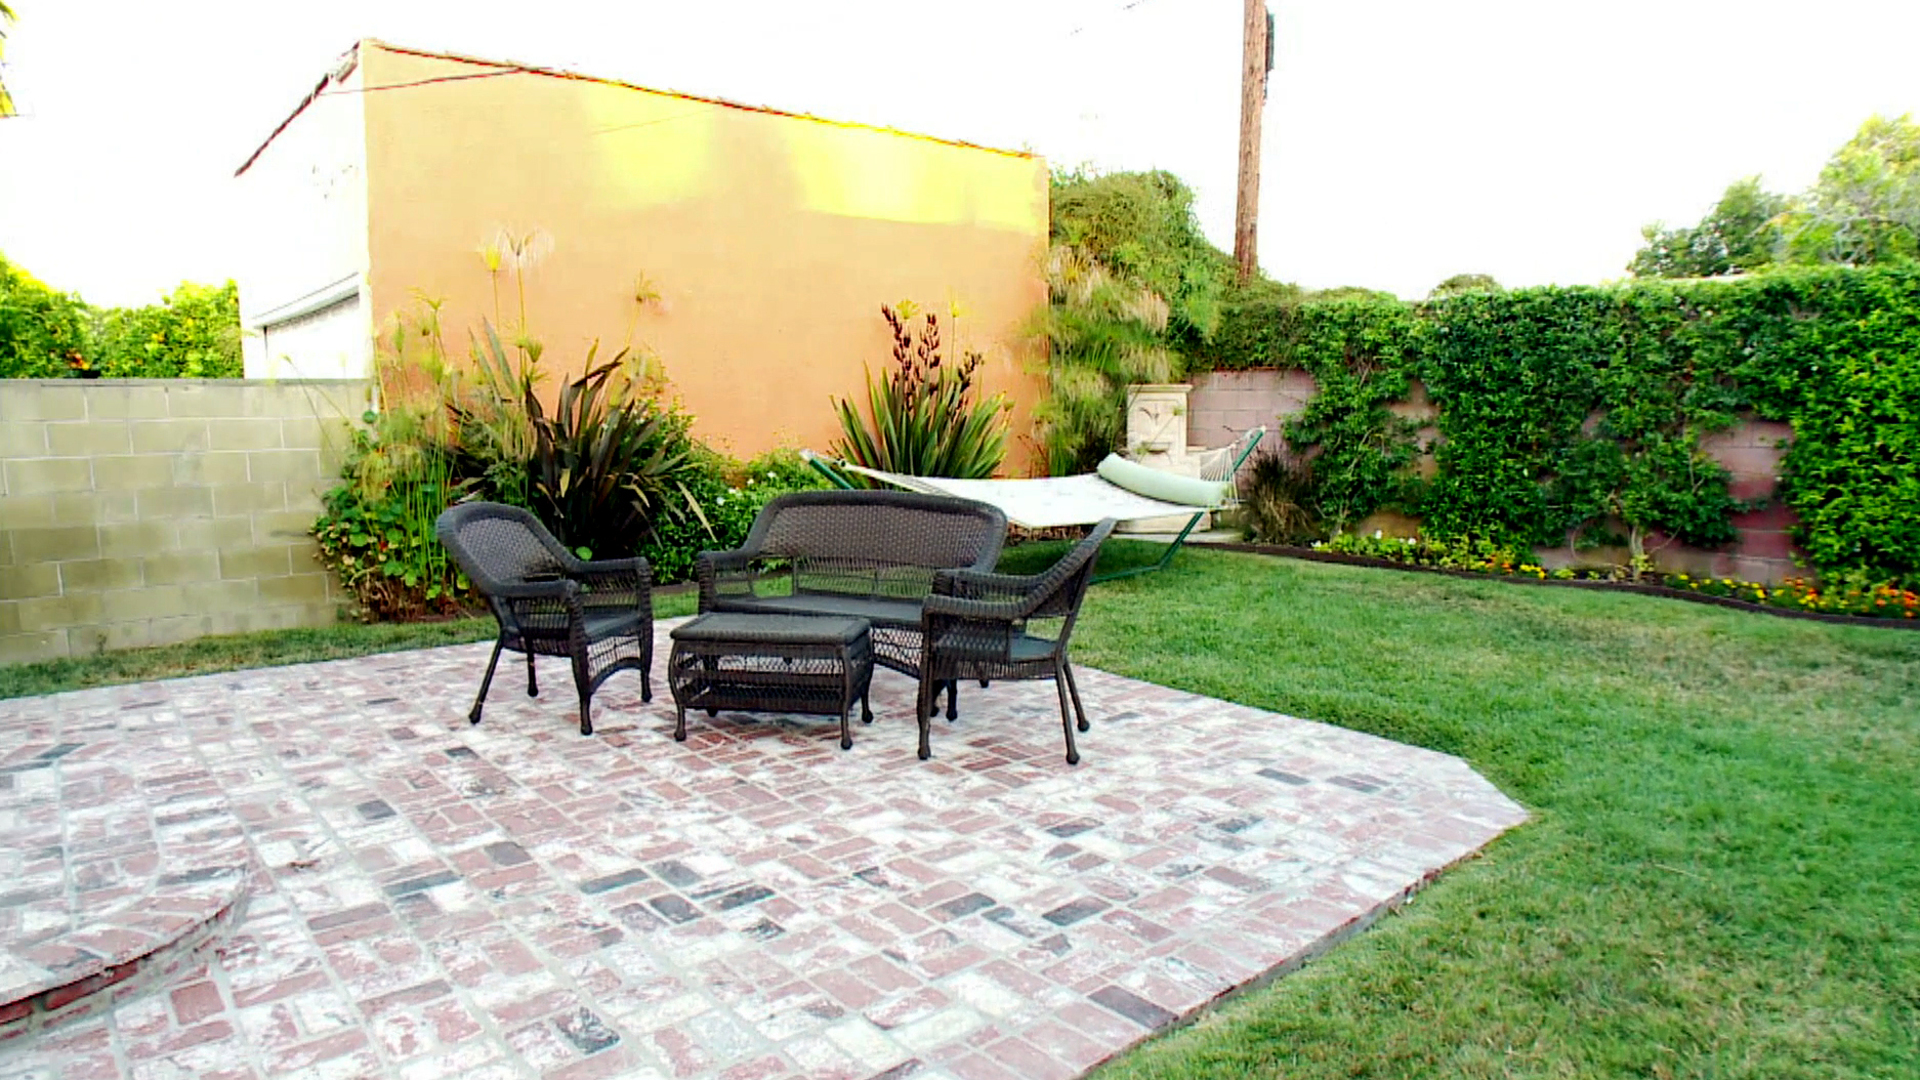 Having Artificial Grass Installed In Your Back Garden Can Help Especially When There Is Drought